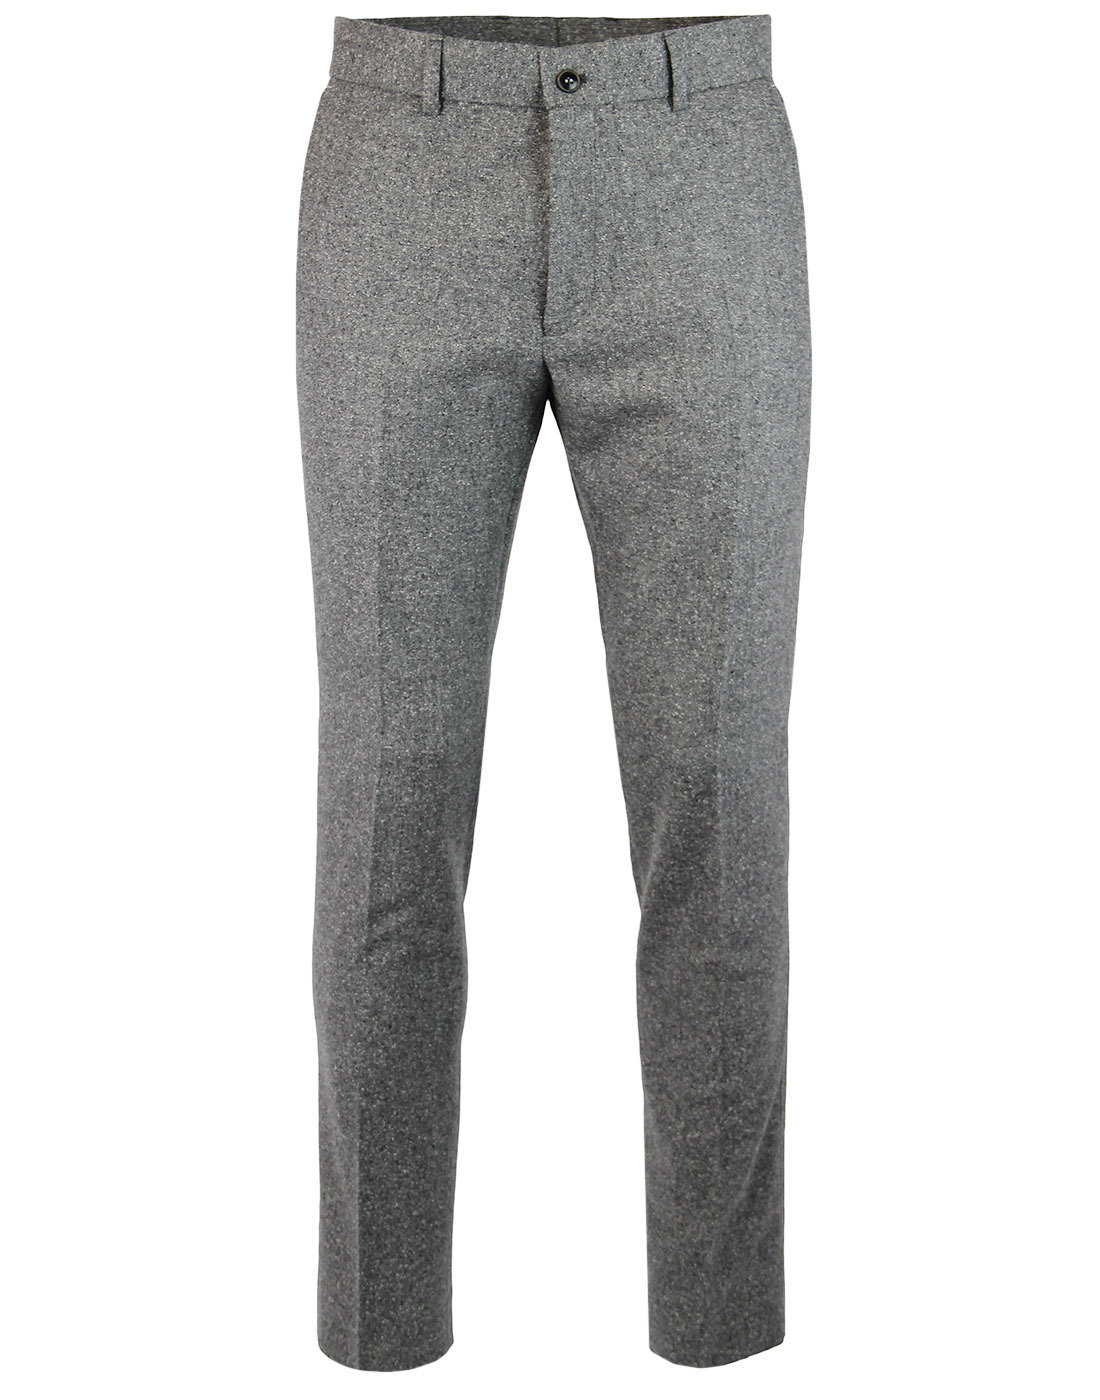 GIBSON LONDON Mod Grey Donegal Flat Front Trousers